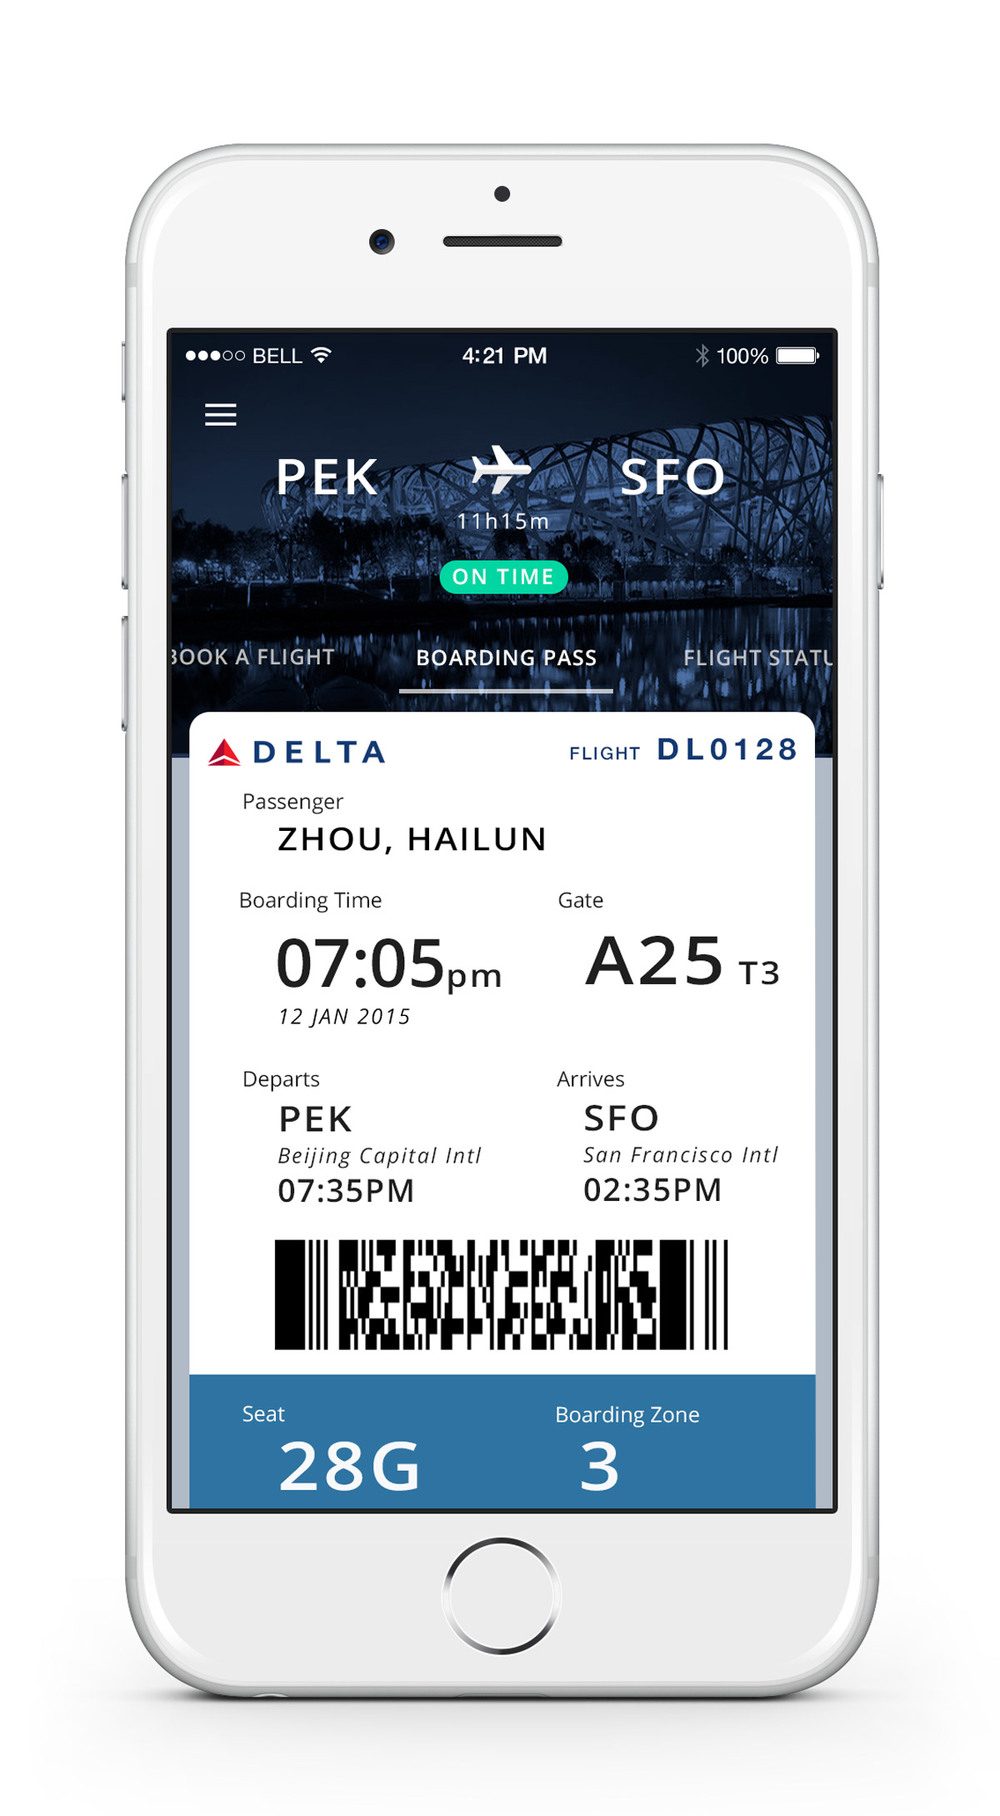 The design gives a naturally transfer from paper to mobile boarding pass. Header indicates the flight status.